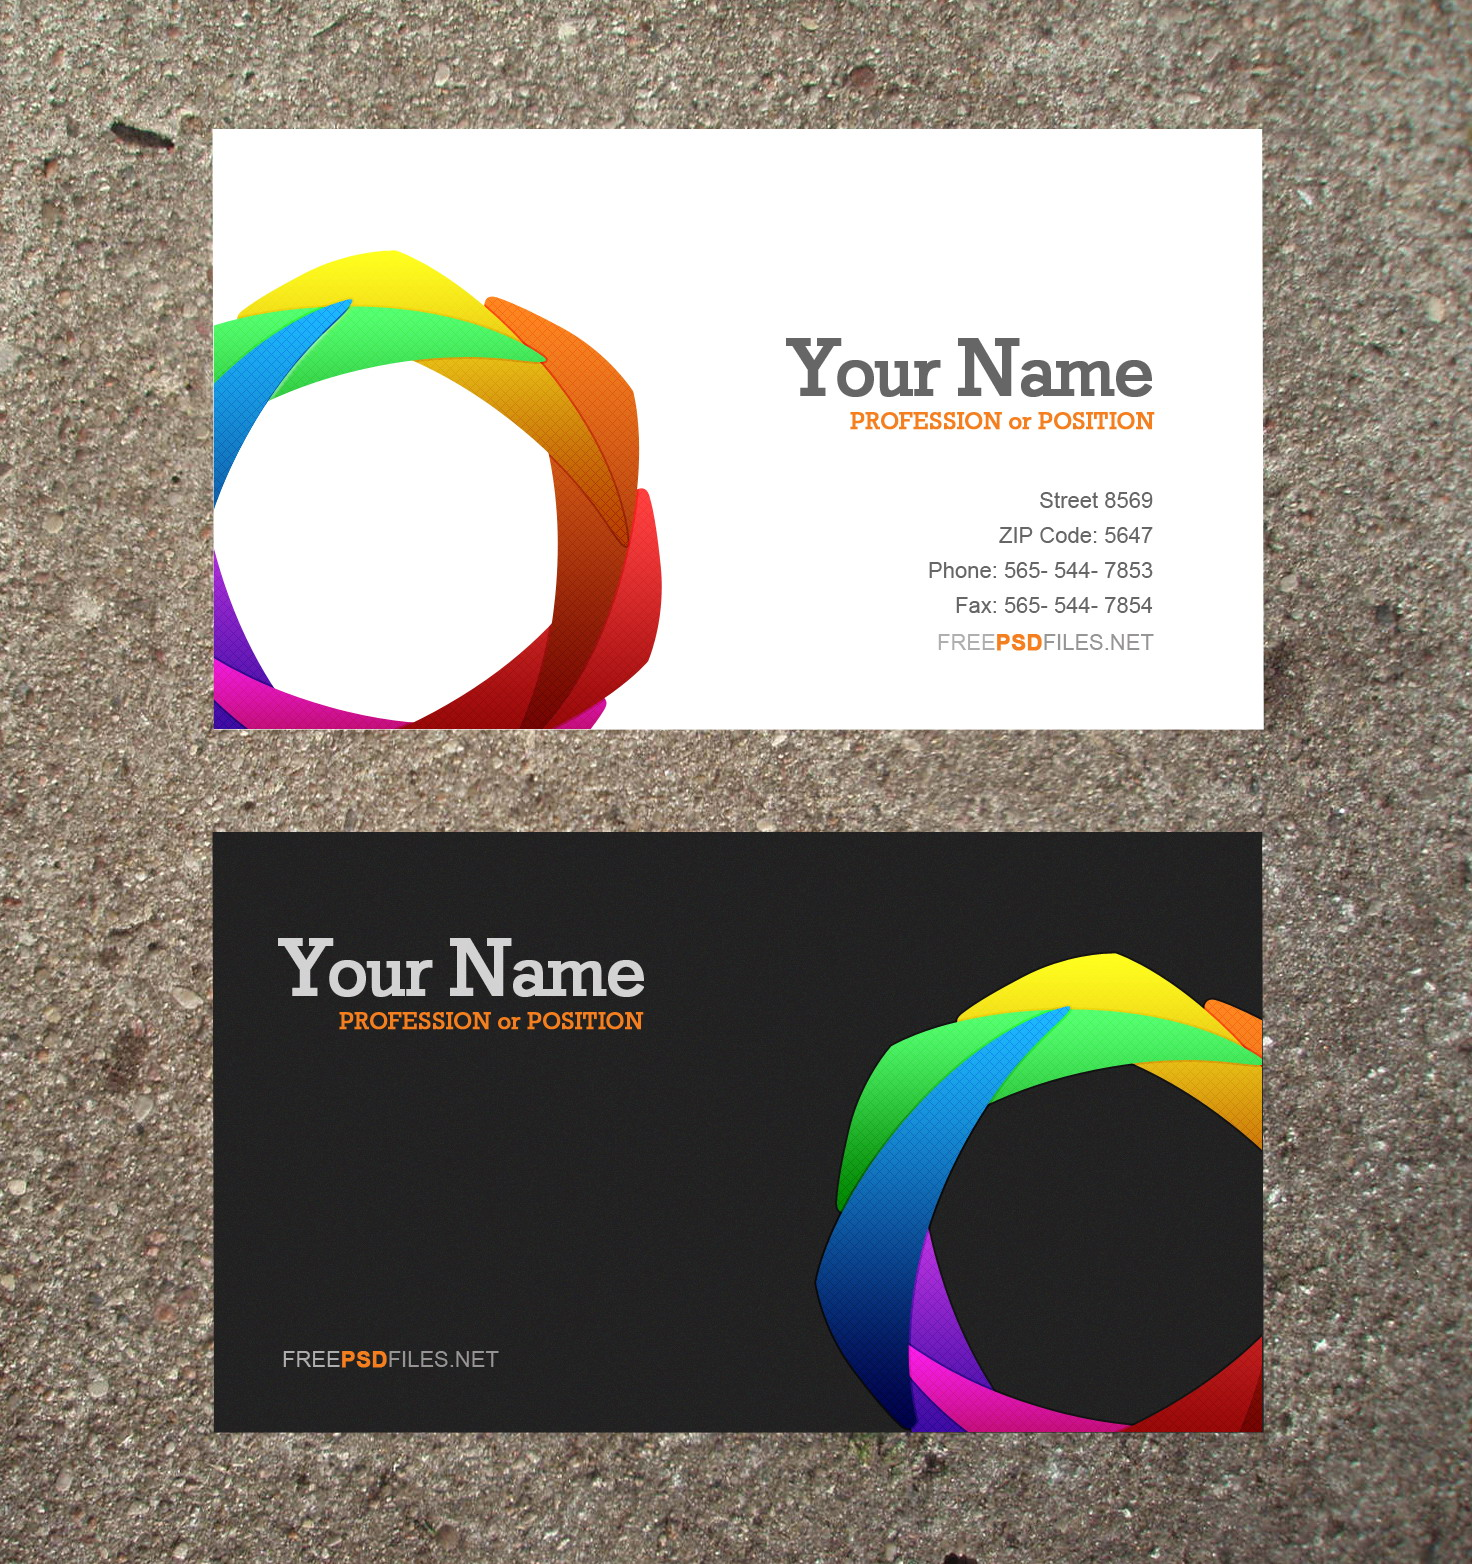 photo business card template 28 images business card template